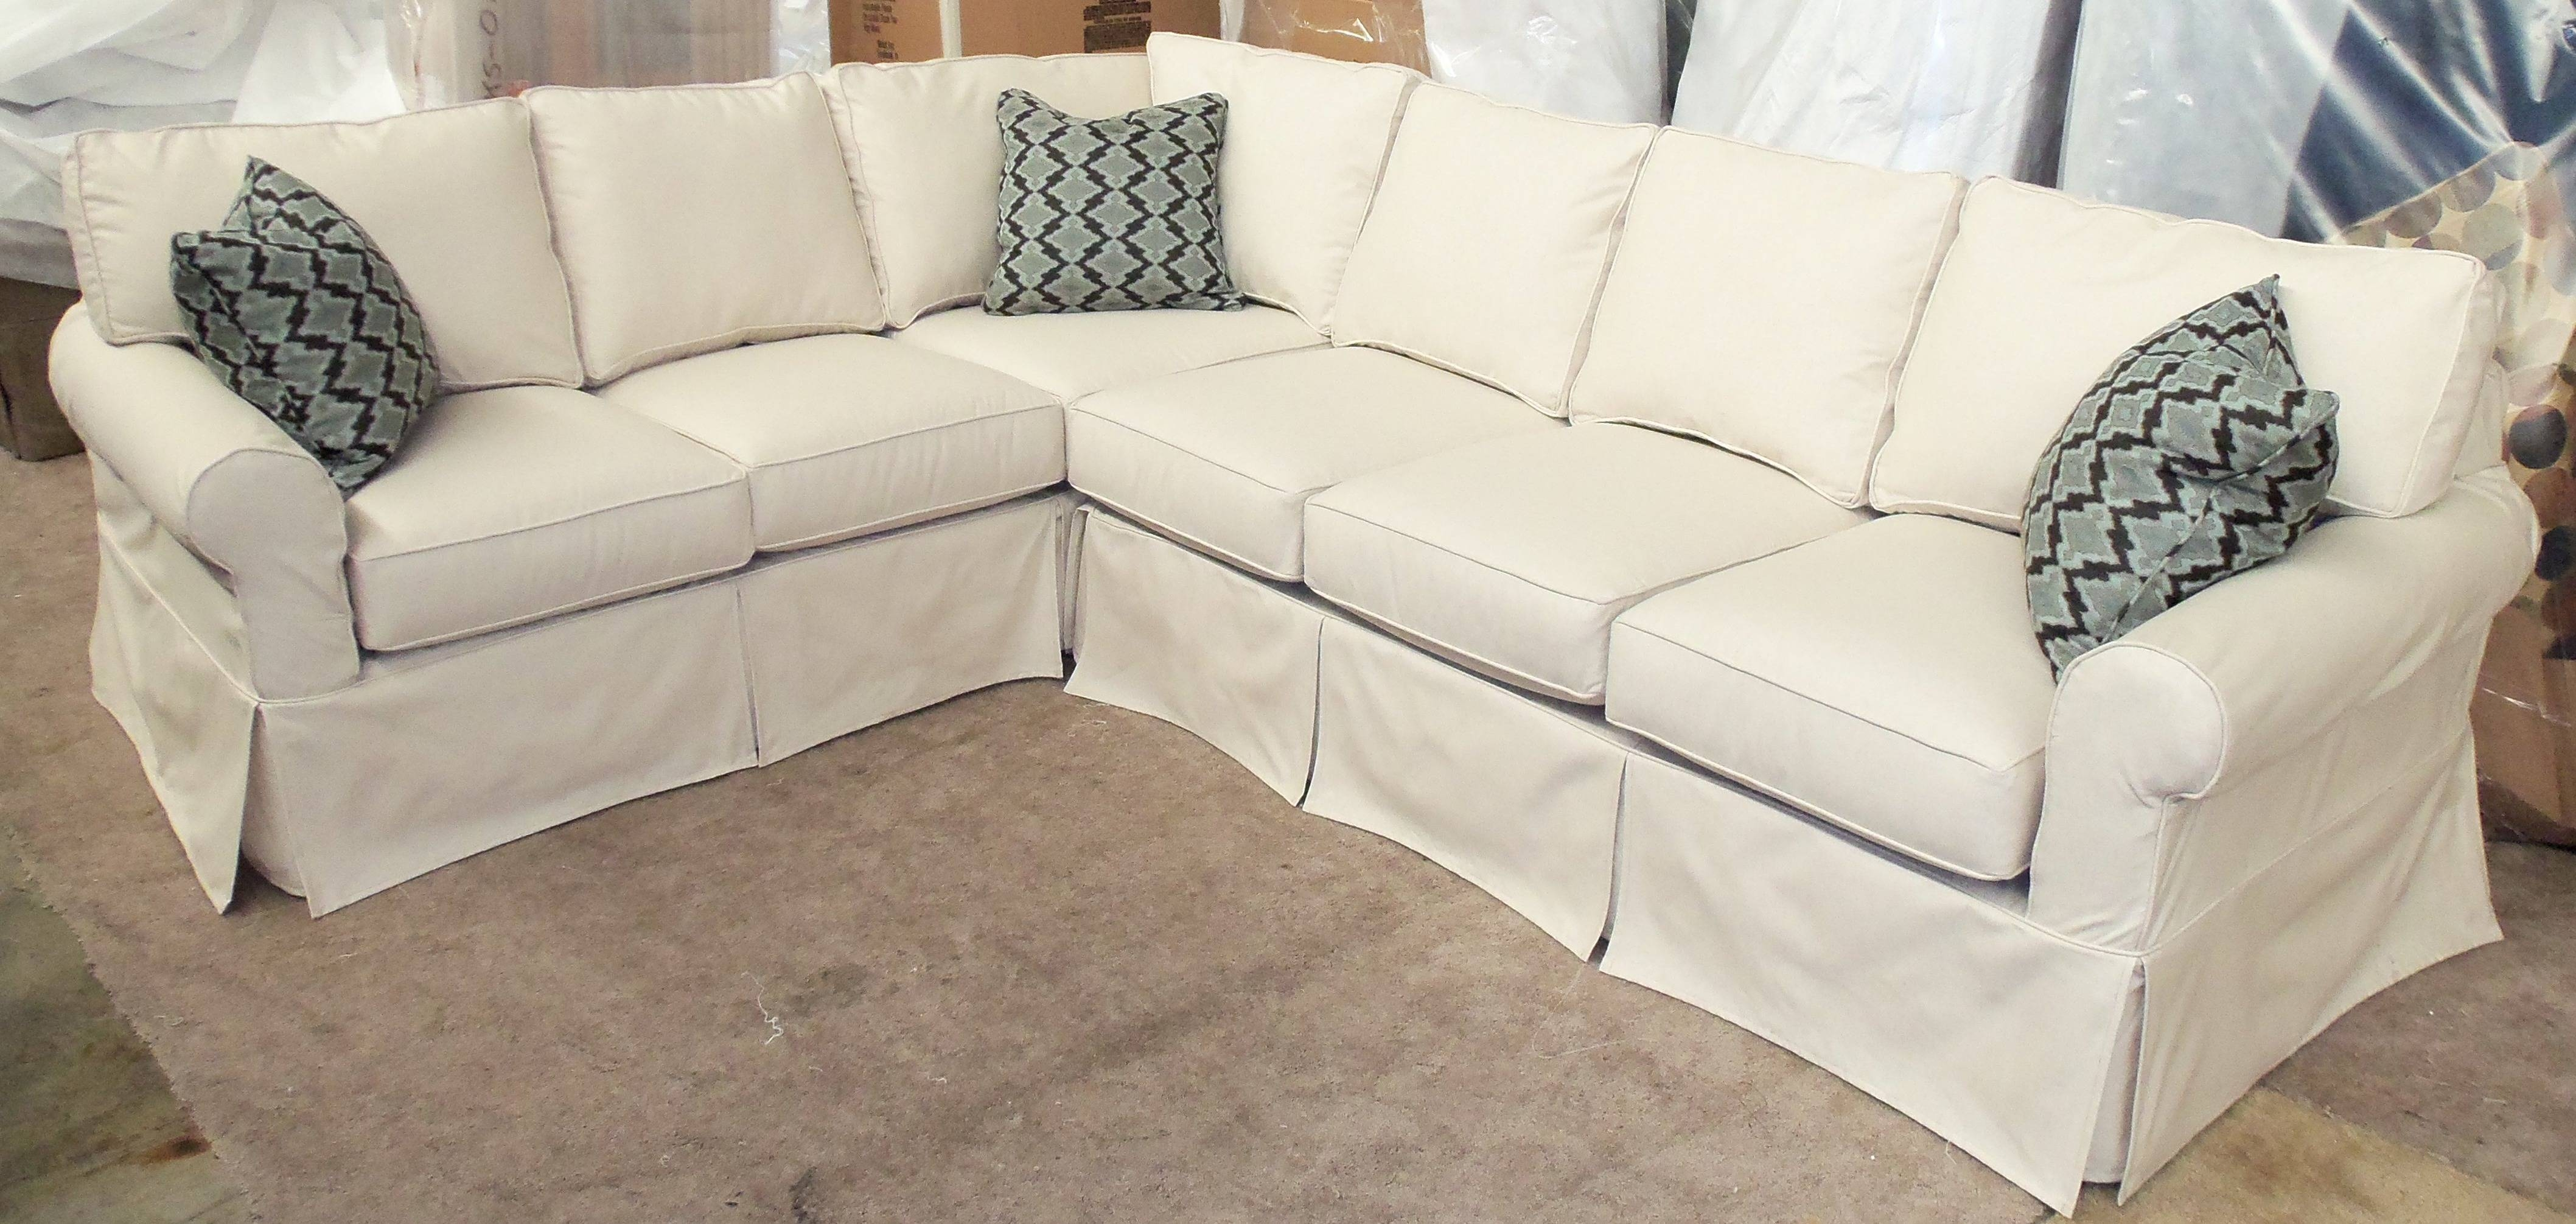 Furniture: Pretty Slipcovered Sectional Sofa For Comfy Your Living intended for Slipcovers For Sectional Sofas With Recliners (Image 11 of 30)